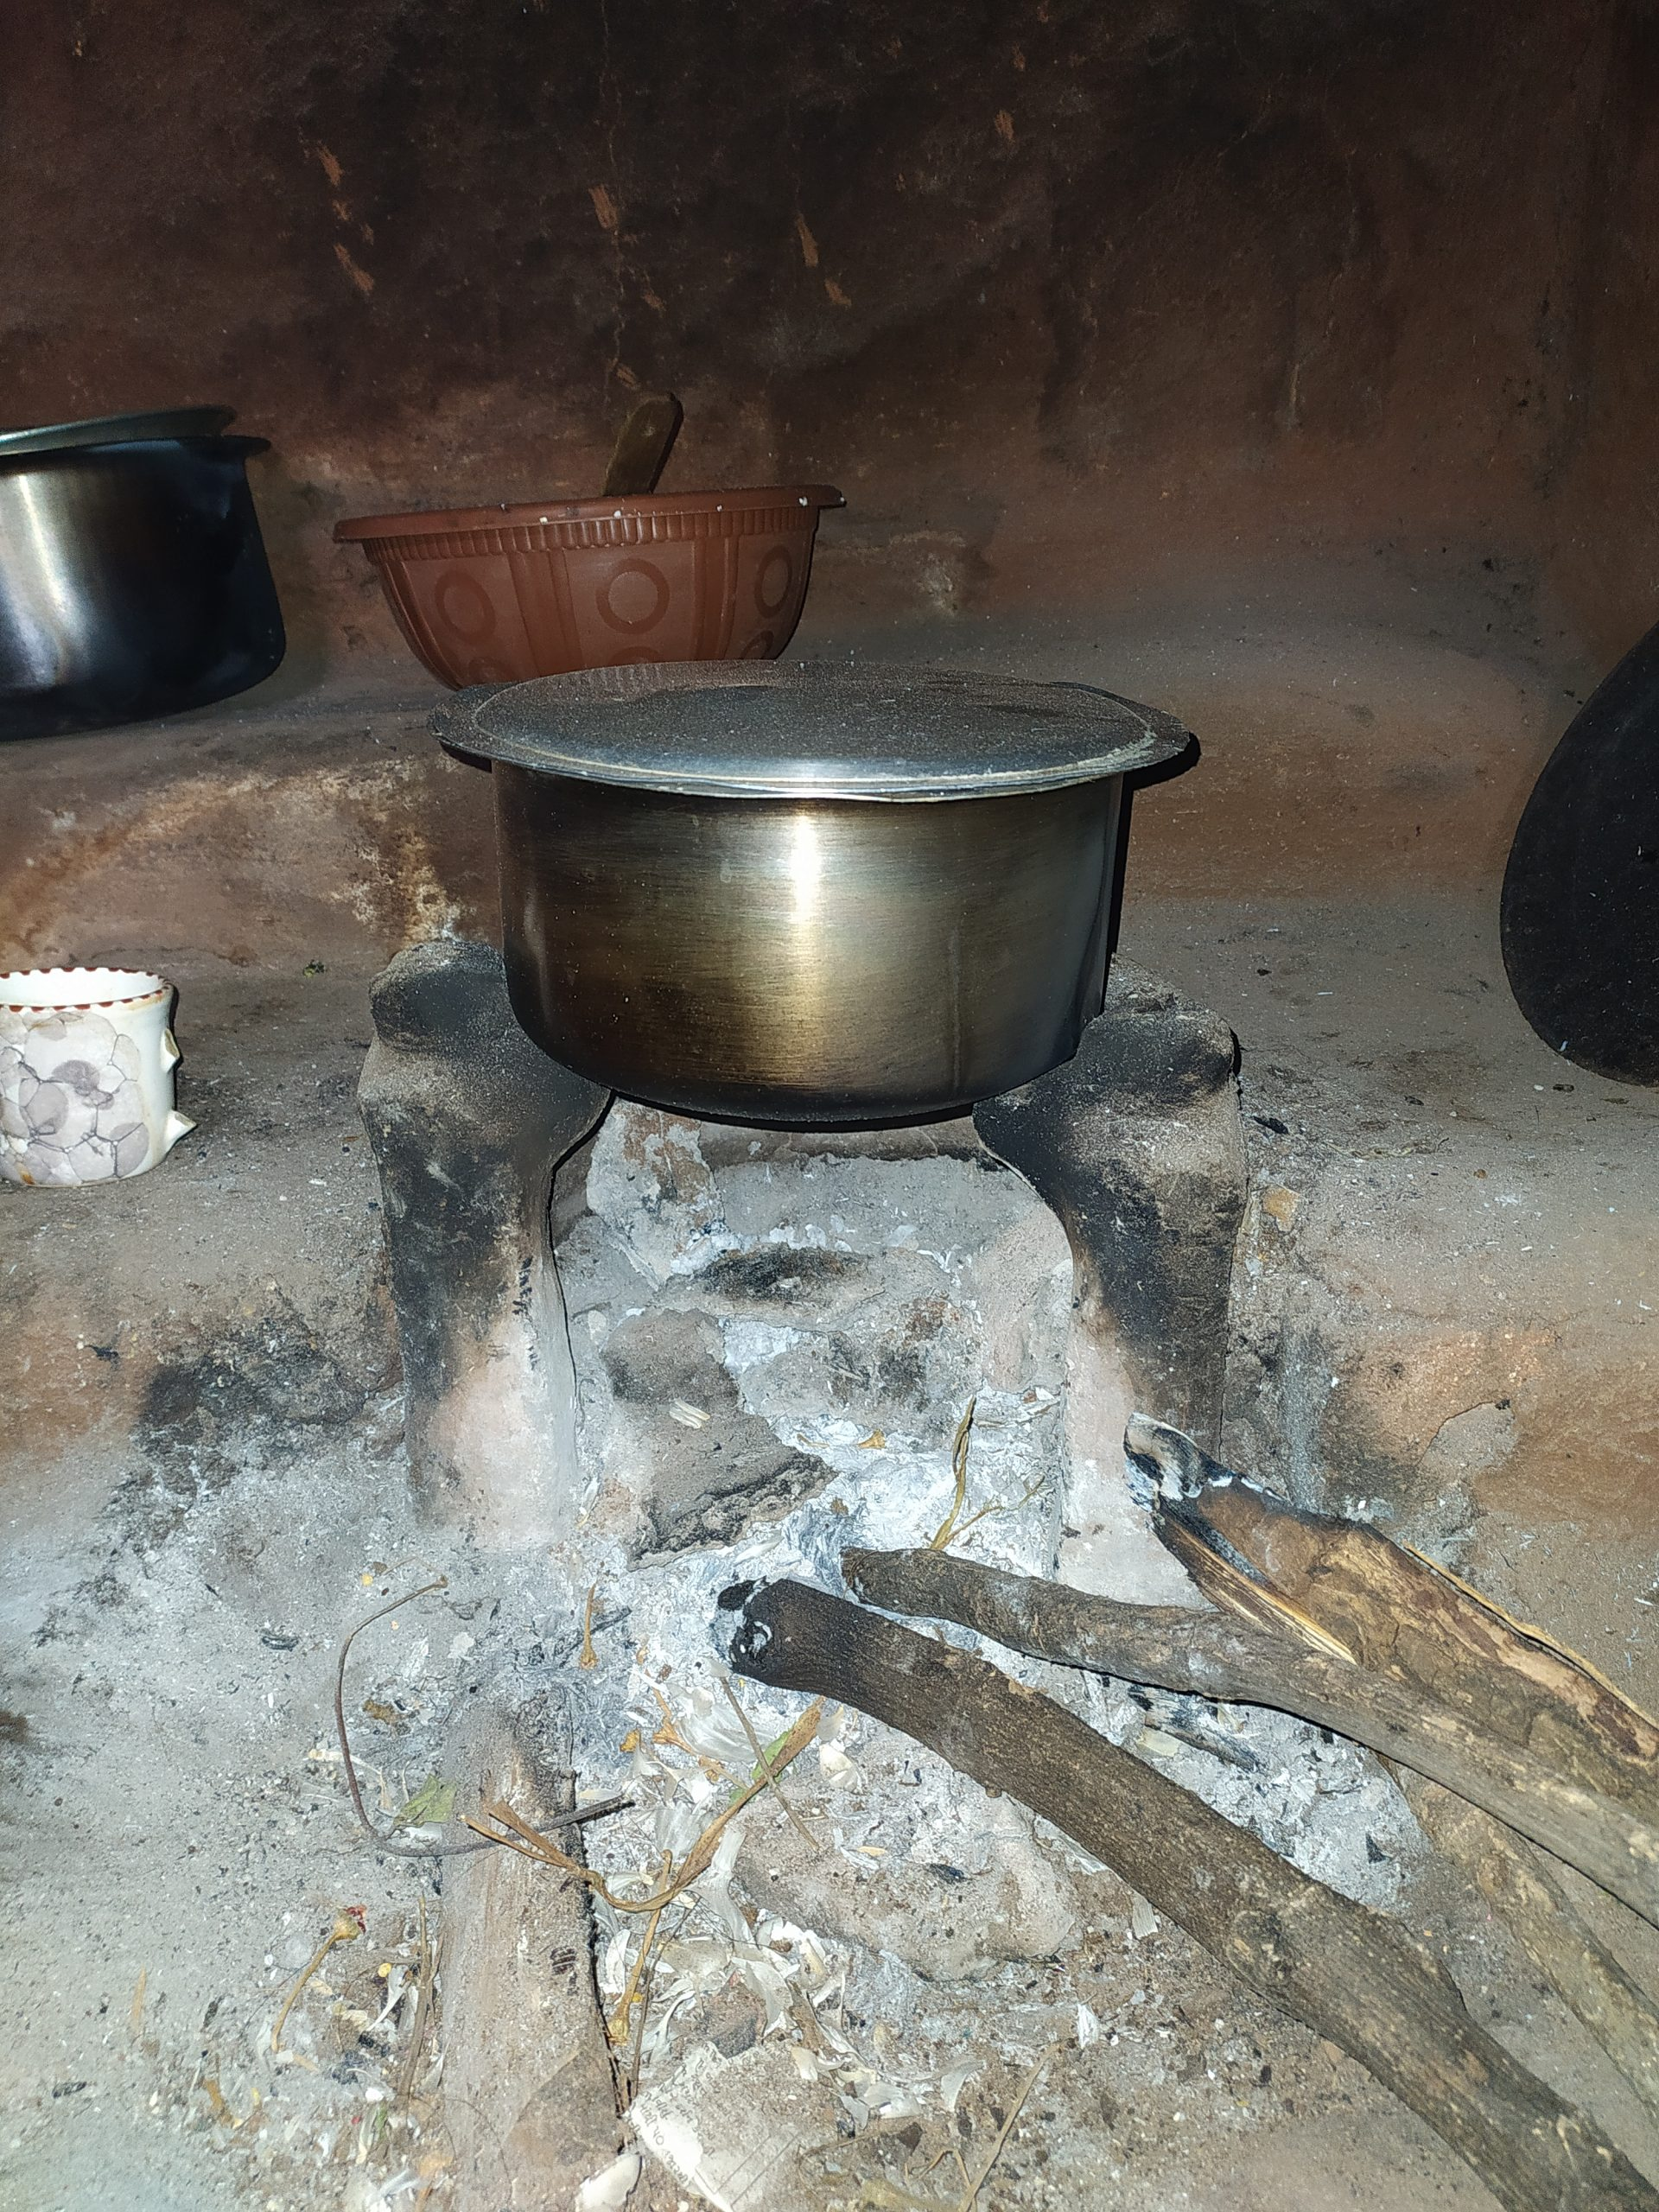 A clay stove